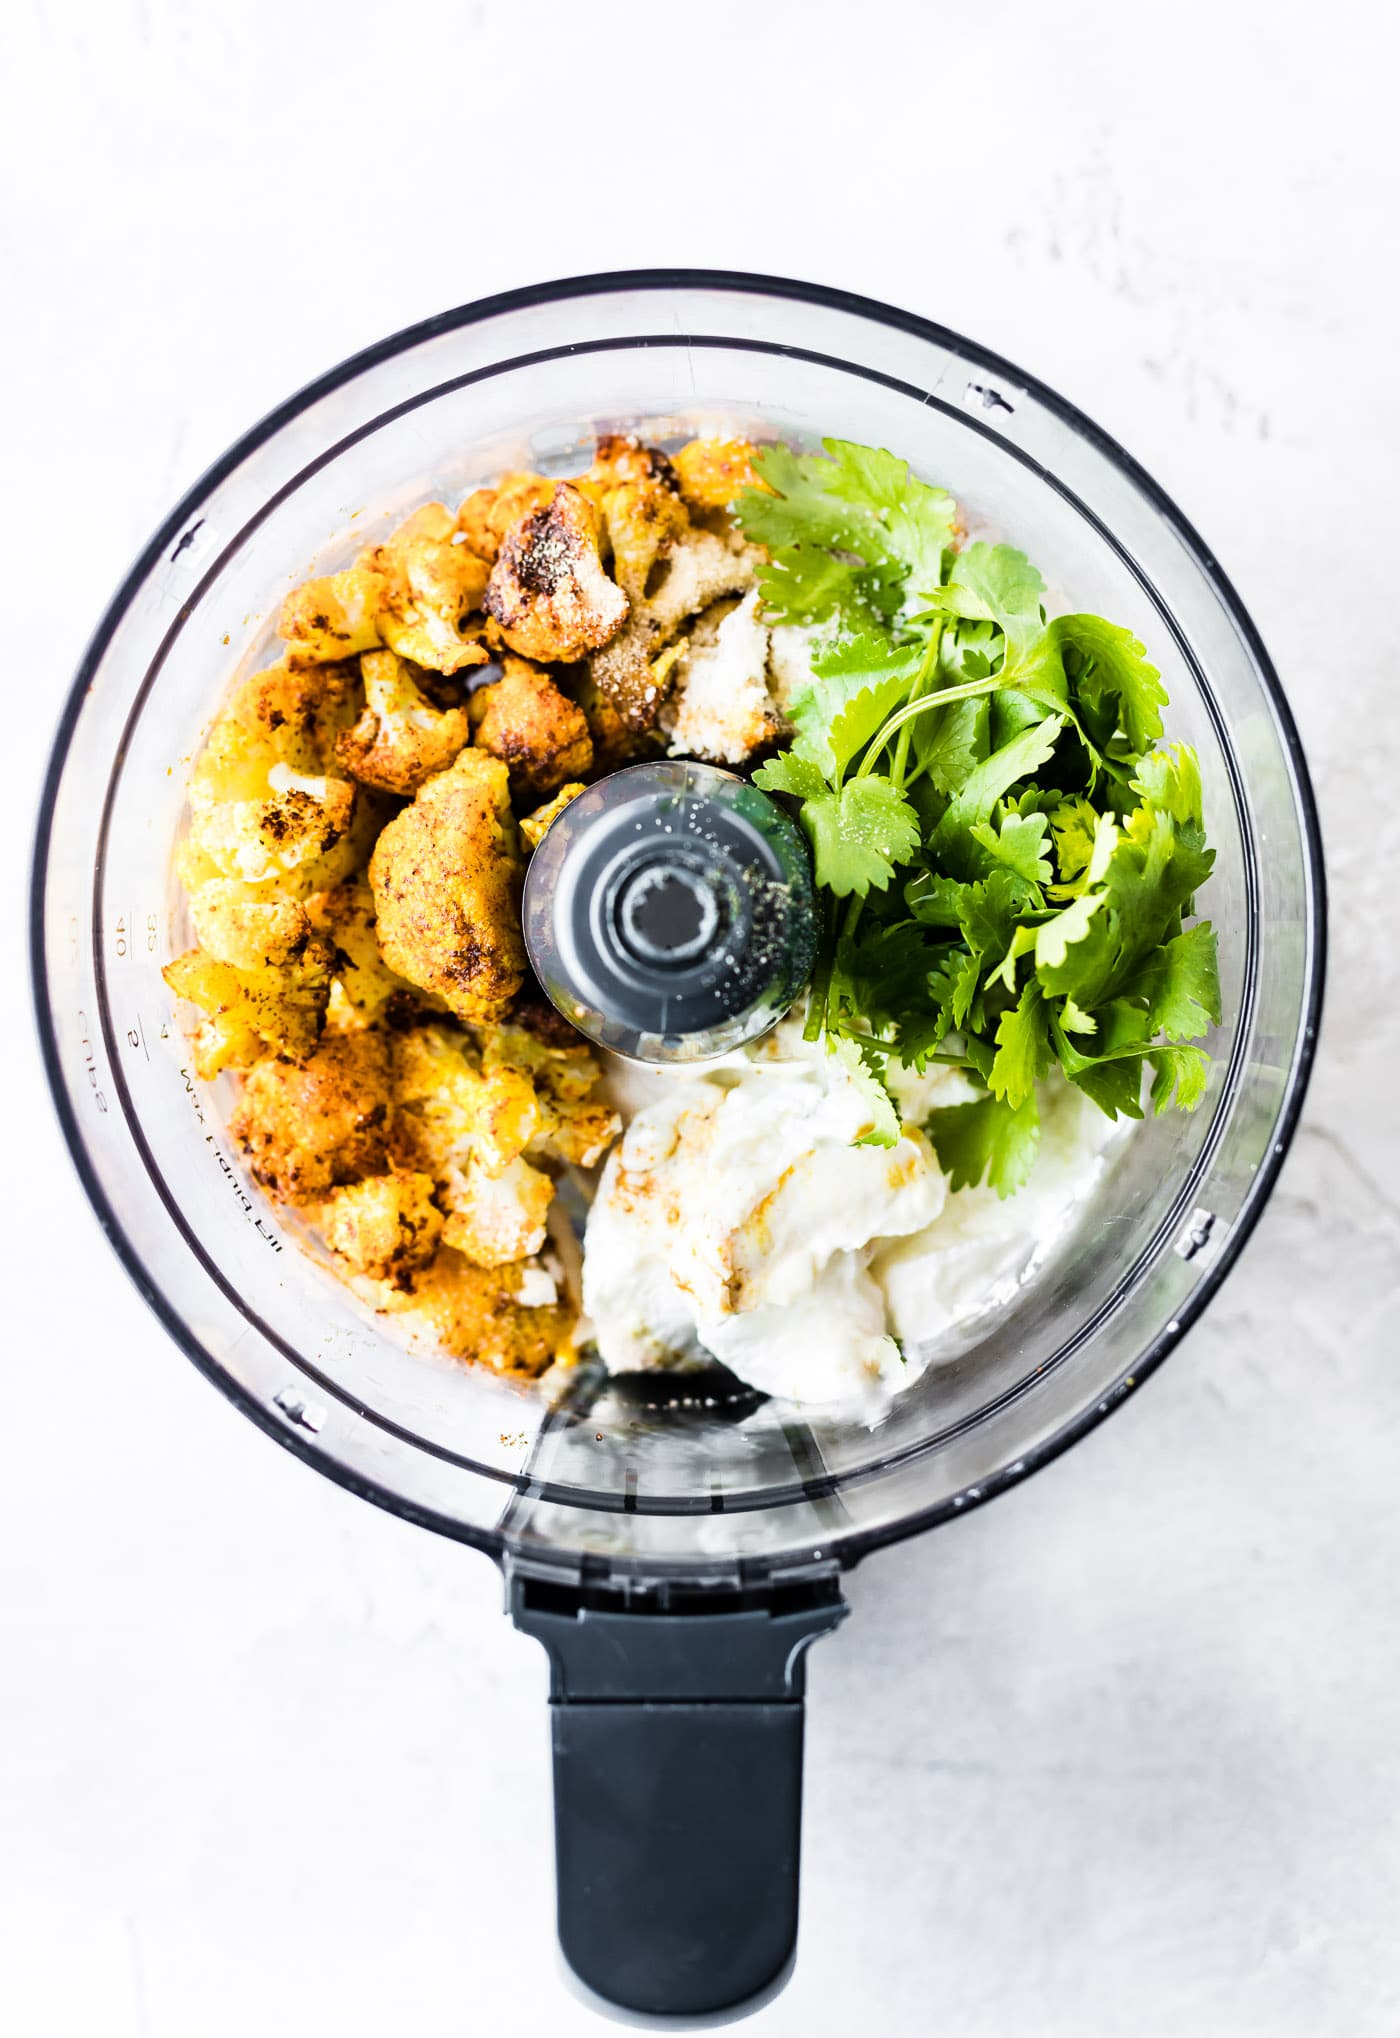 This Tandoori Roasted Cauliflower dip is a flavorful creamy vegetable dip that is perfect for snacking, appetizers, or small plates. Greek yogurt, homemade tandoori seasoning, roasted cauliflower, and parmesan make this dip filling and healthy!